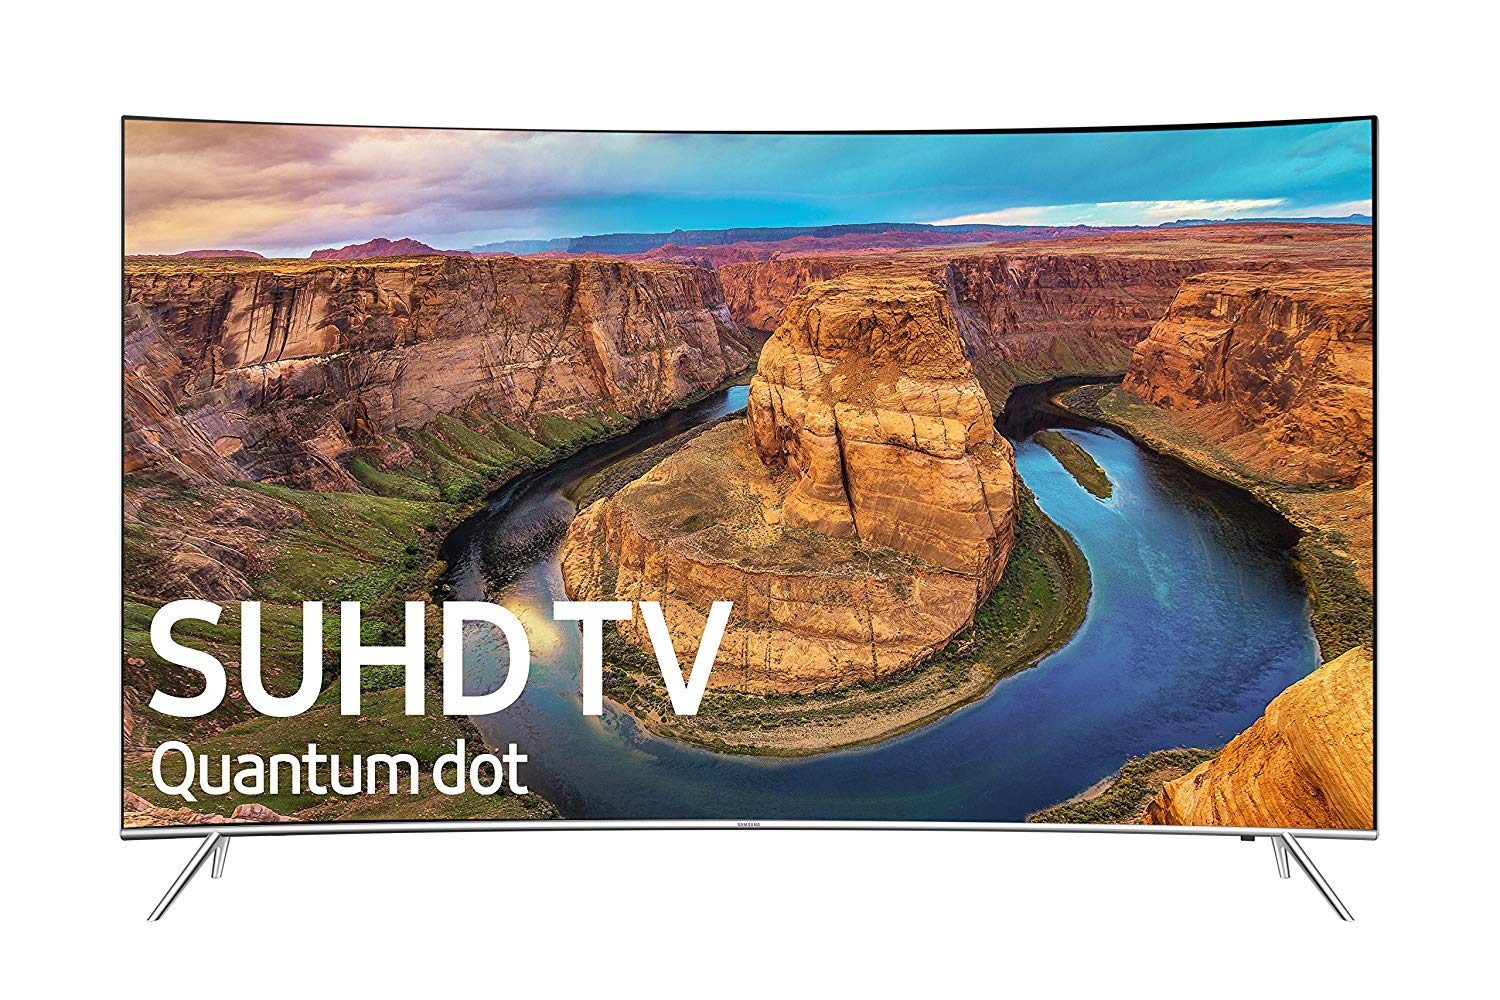 Samsung UN65KS8500 Curved 65-Inch 4K Ultra HD Smart LED TV (2016 Model)